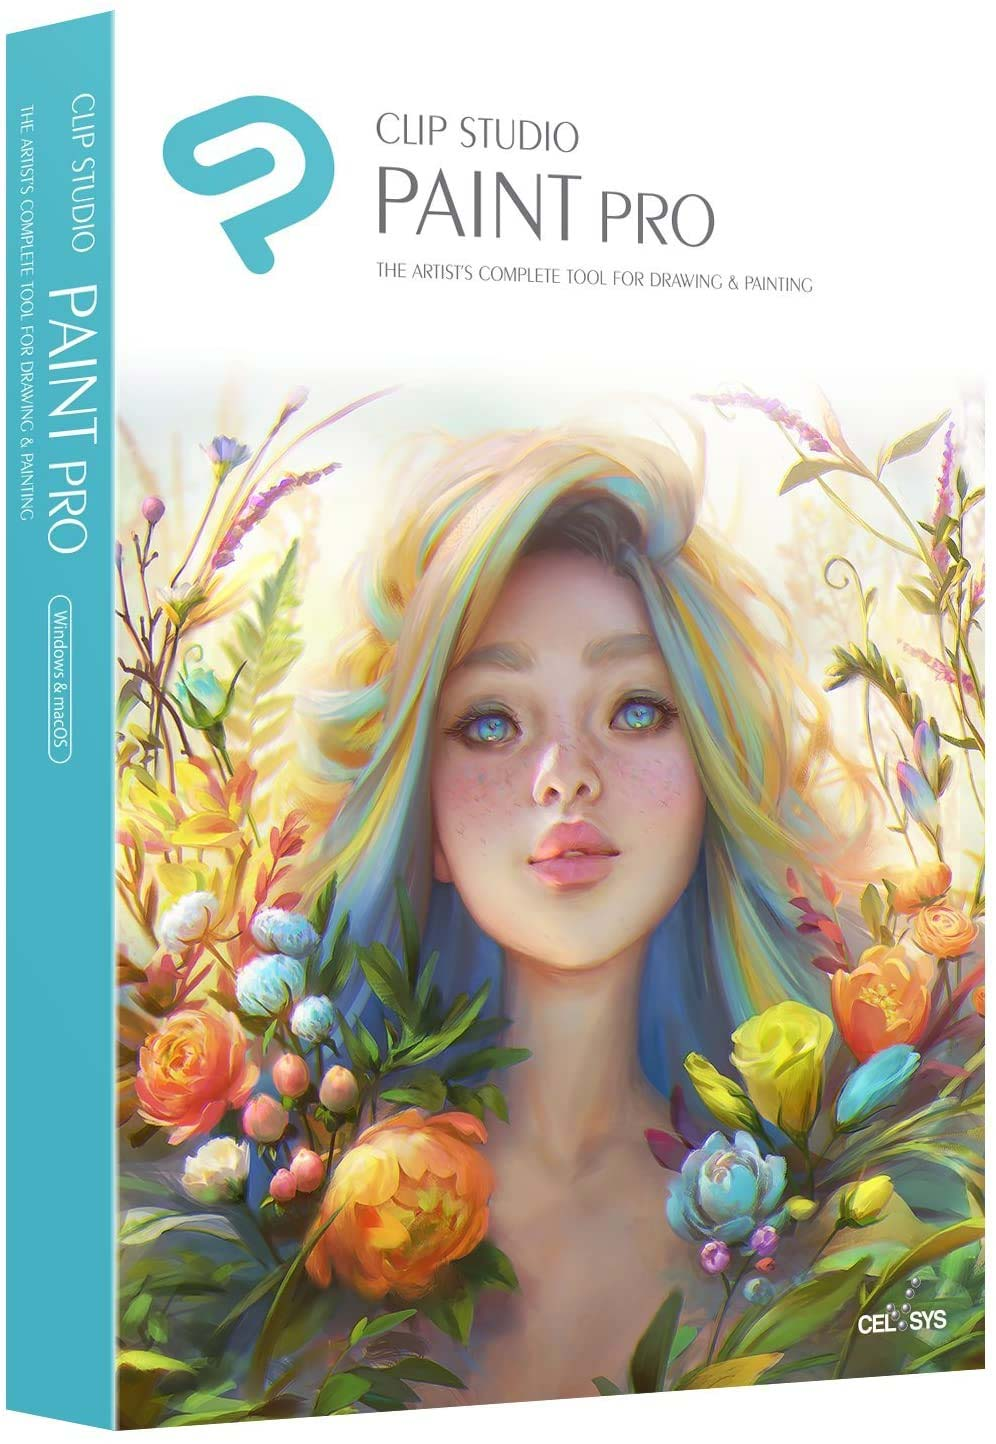 Clip-Studio PAINT PRO (Grafiksoftware)